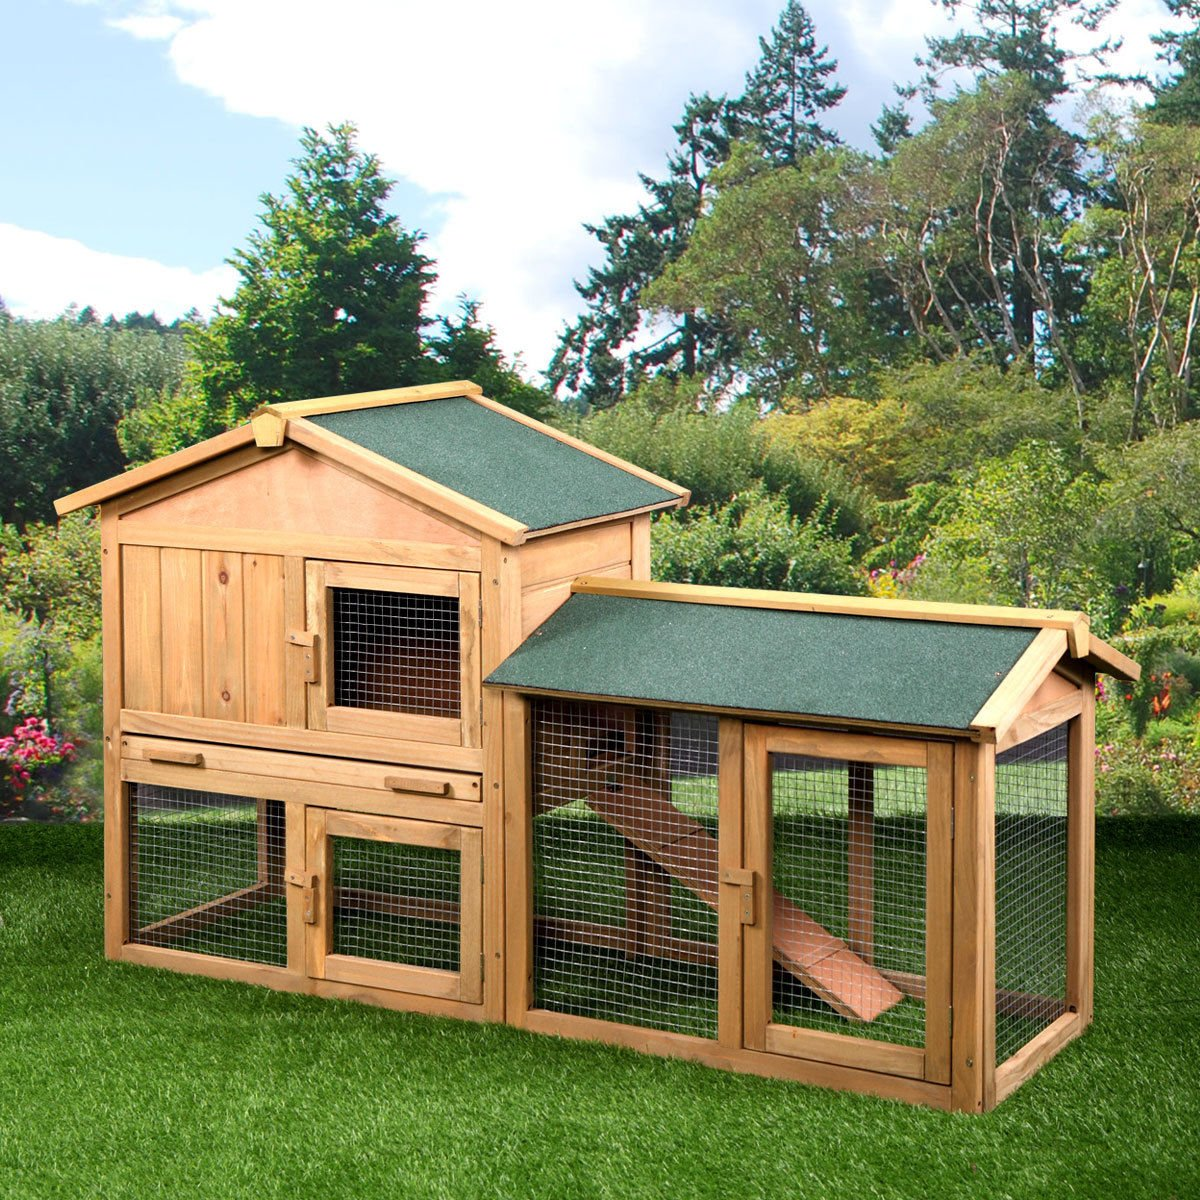 JAXPETY 58'' Large Wooden Rabbit Hutch Chicken Coop Bunny Animal Hen Cage Backyard Garden w/Run